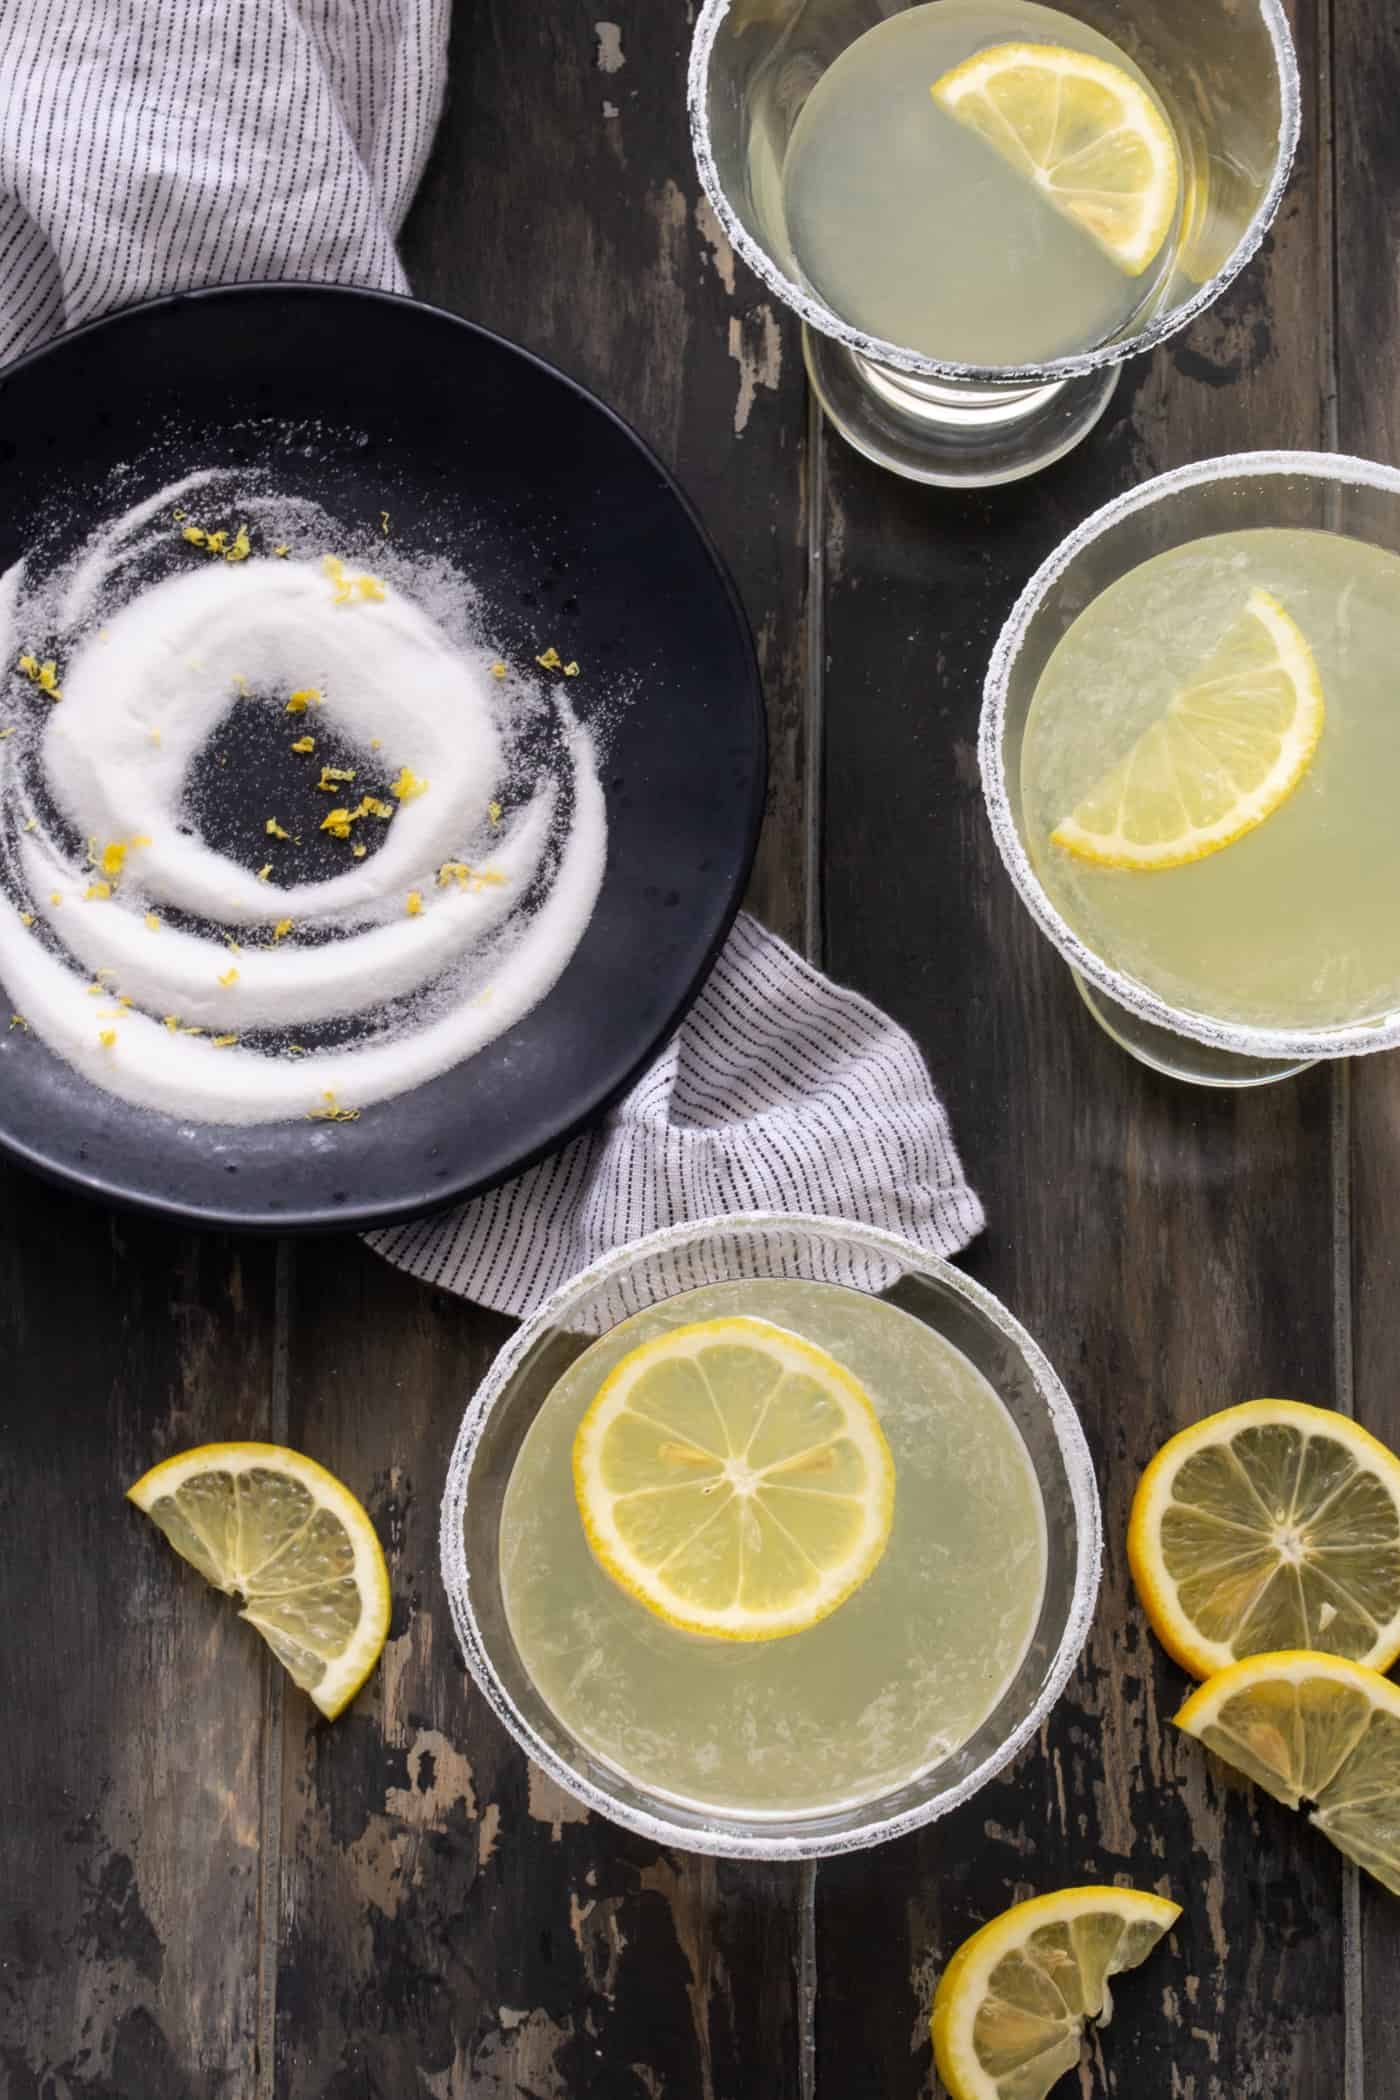 TOp down image of Lemon Drop martini recipe in several low martini glasses with sugared rims and garnished with fresh lemon wheels.